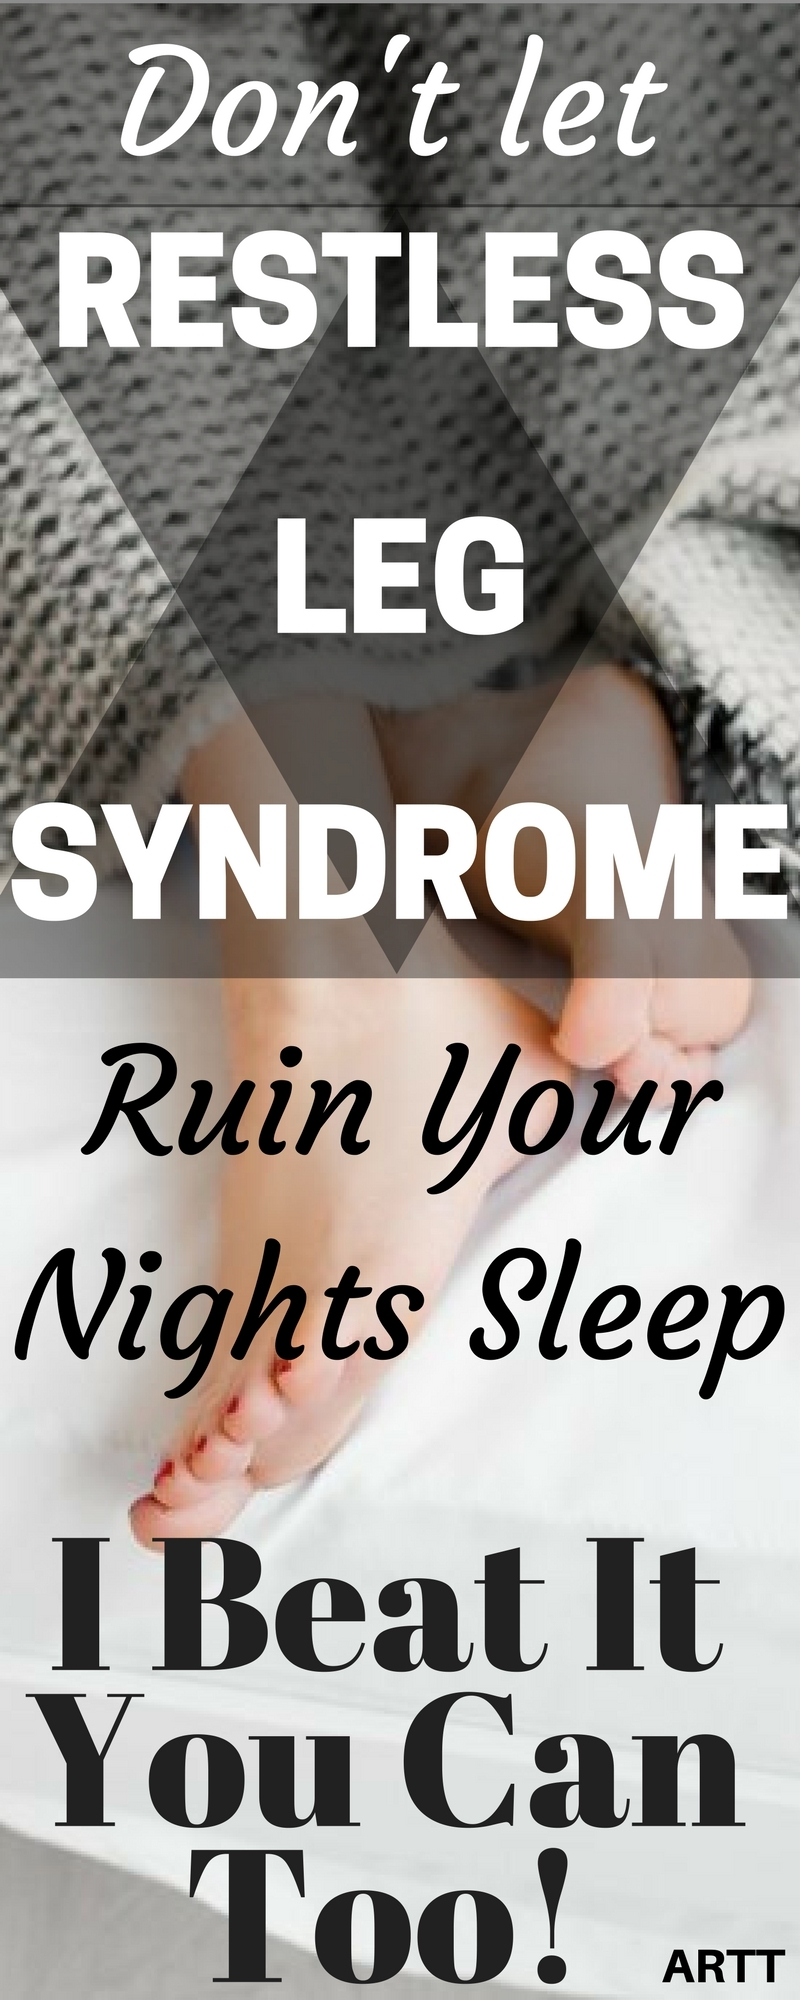 Before fixing a problem, it is necessary to understand it and knowing what cramps and RLS are can help you make the right choice of which natural method to use. #RLS #Restlesslegsyndrome #legcramps  | restless leg syndrome | restless leg syndrome remedies | restless leg syndrome essential oils | restless leg syndrome symptoms | restless leg syndrome relief | leg cramps | leg cramps at night | leg cramps at night remedies | RLS remedies | RLS relief